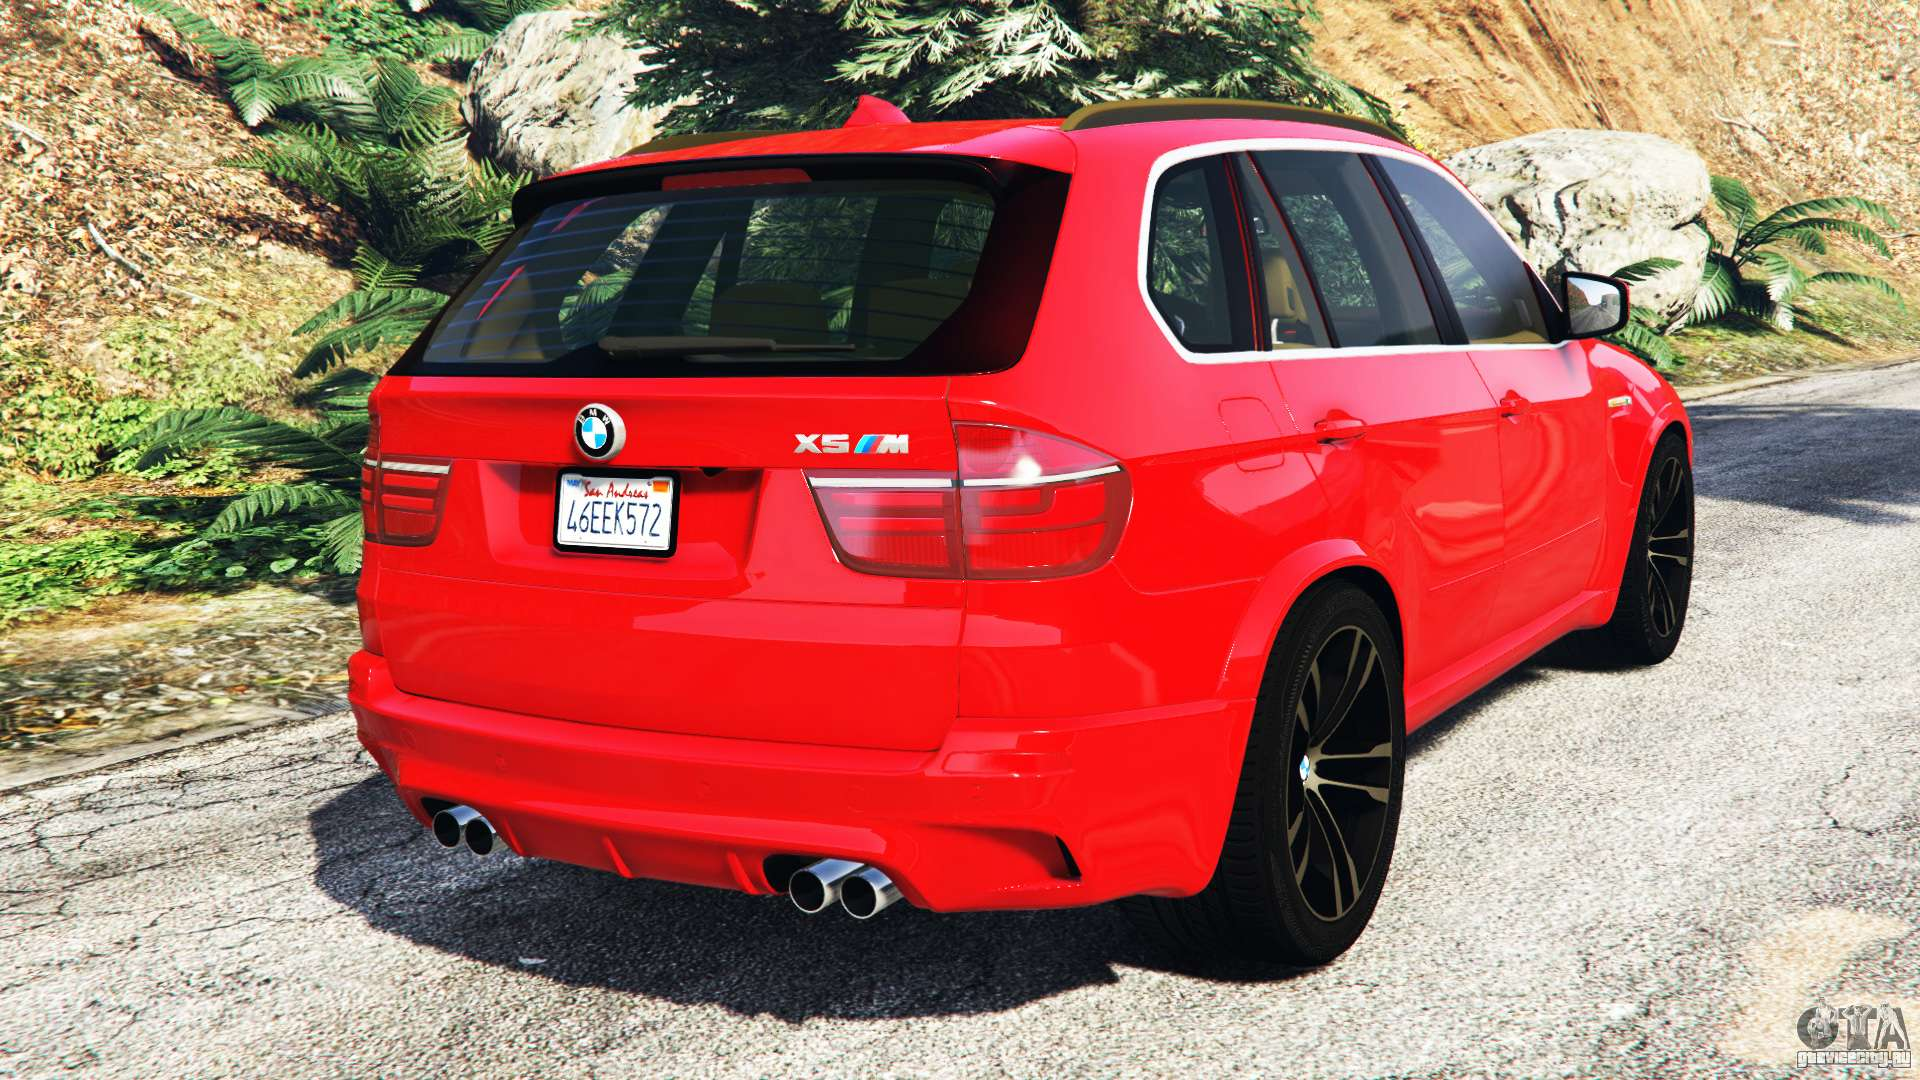 bmw x5 m e70 2013 v0 3 replace gta 5. Black Bedroom Furniture Sets. Home Design Ideas